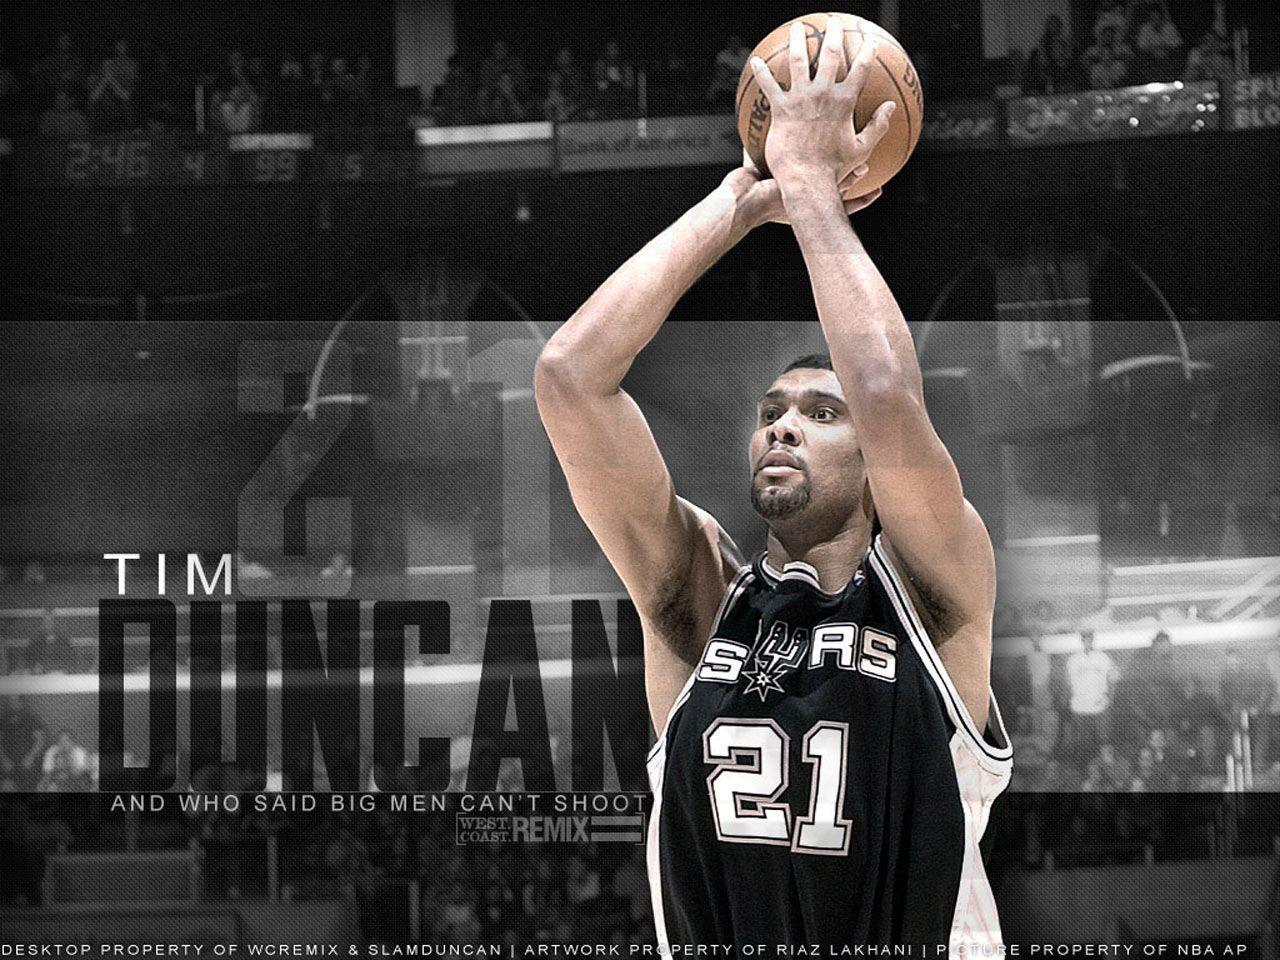 Tim duncan wallpapers wallpaper cave - Tim duncan iphone wallpaper ...